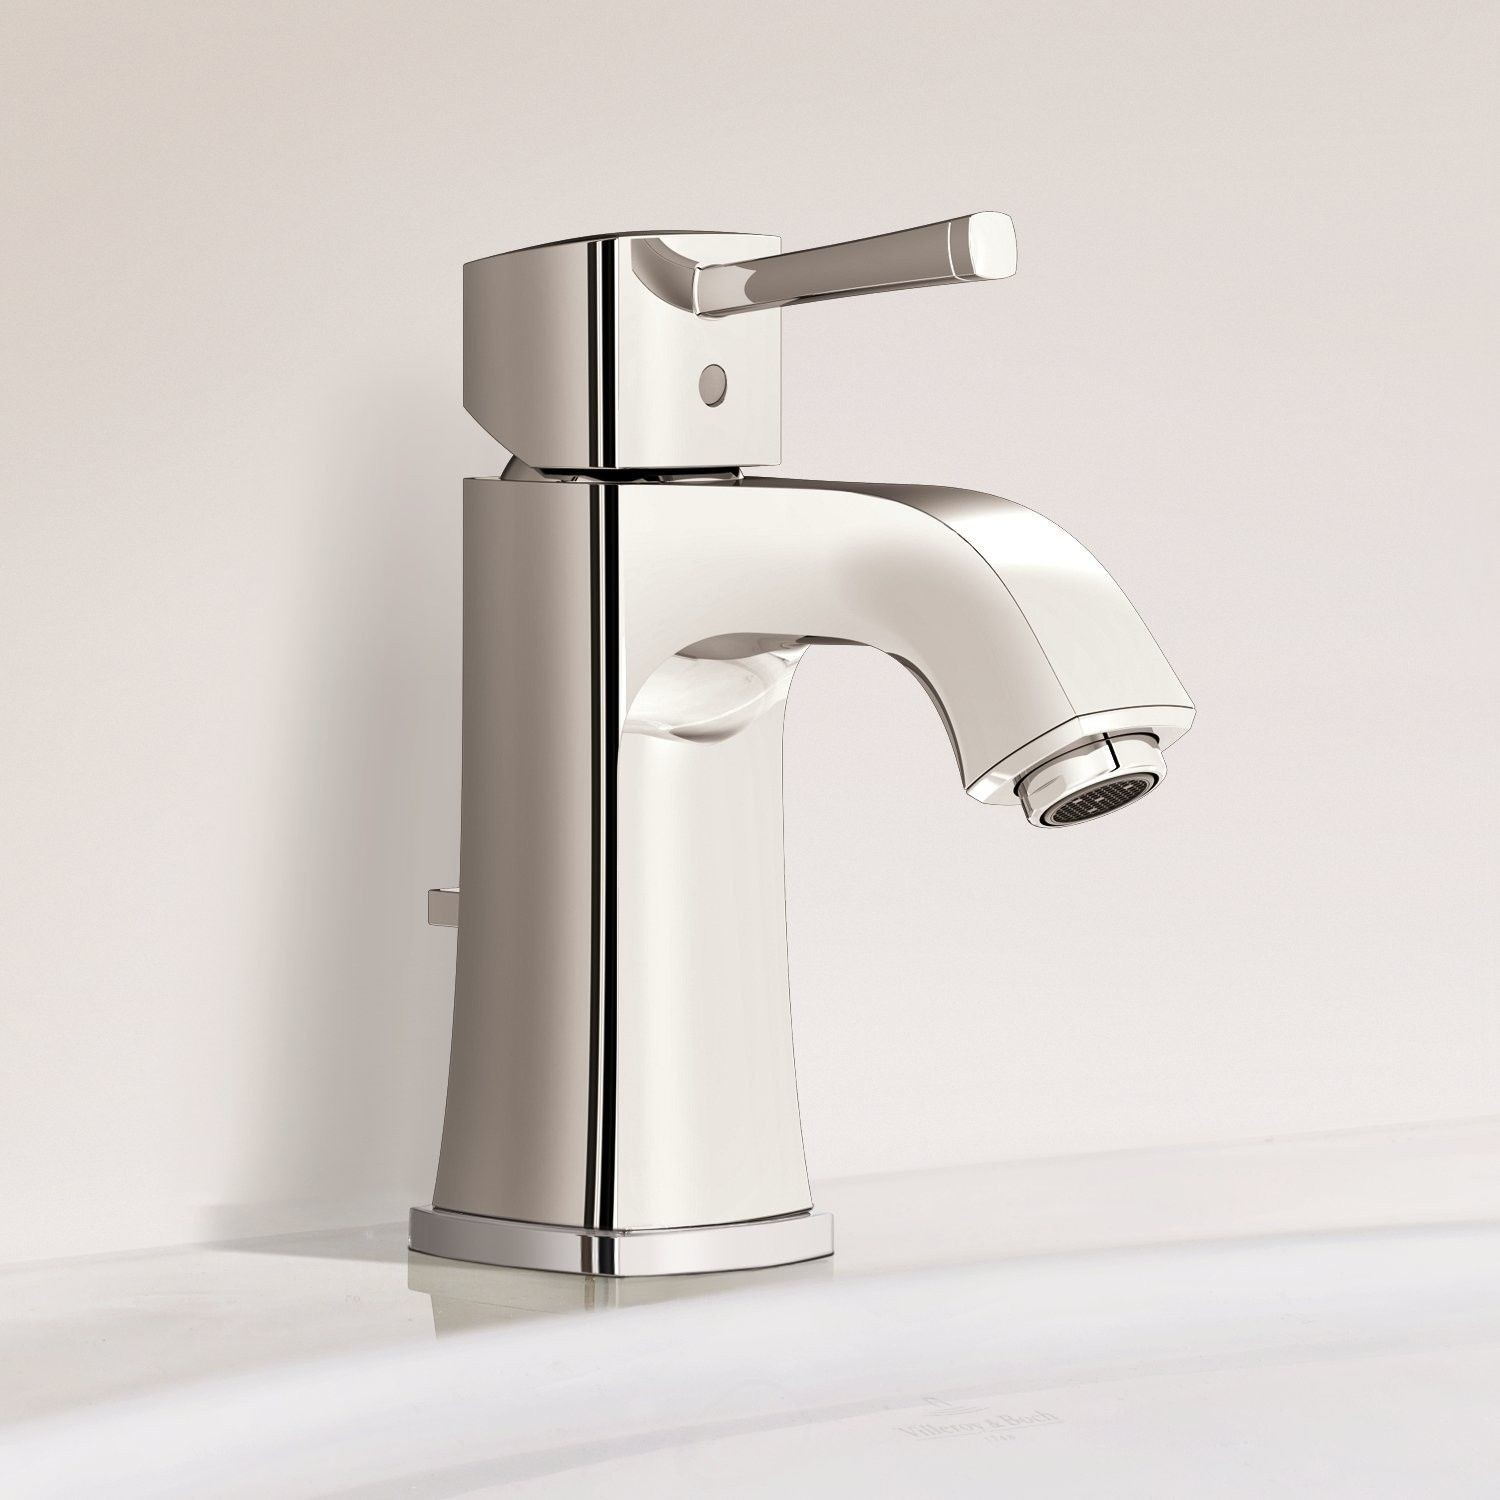 Grohe Grandera Single Lever Basin Mixer Tap Deck Mounted